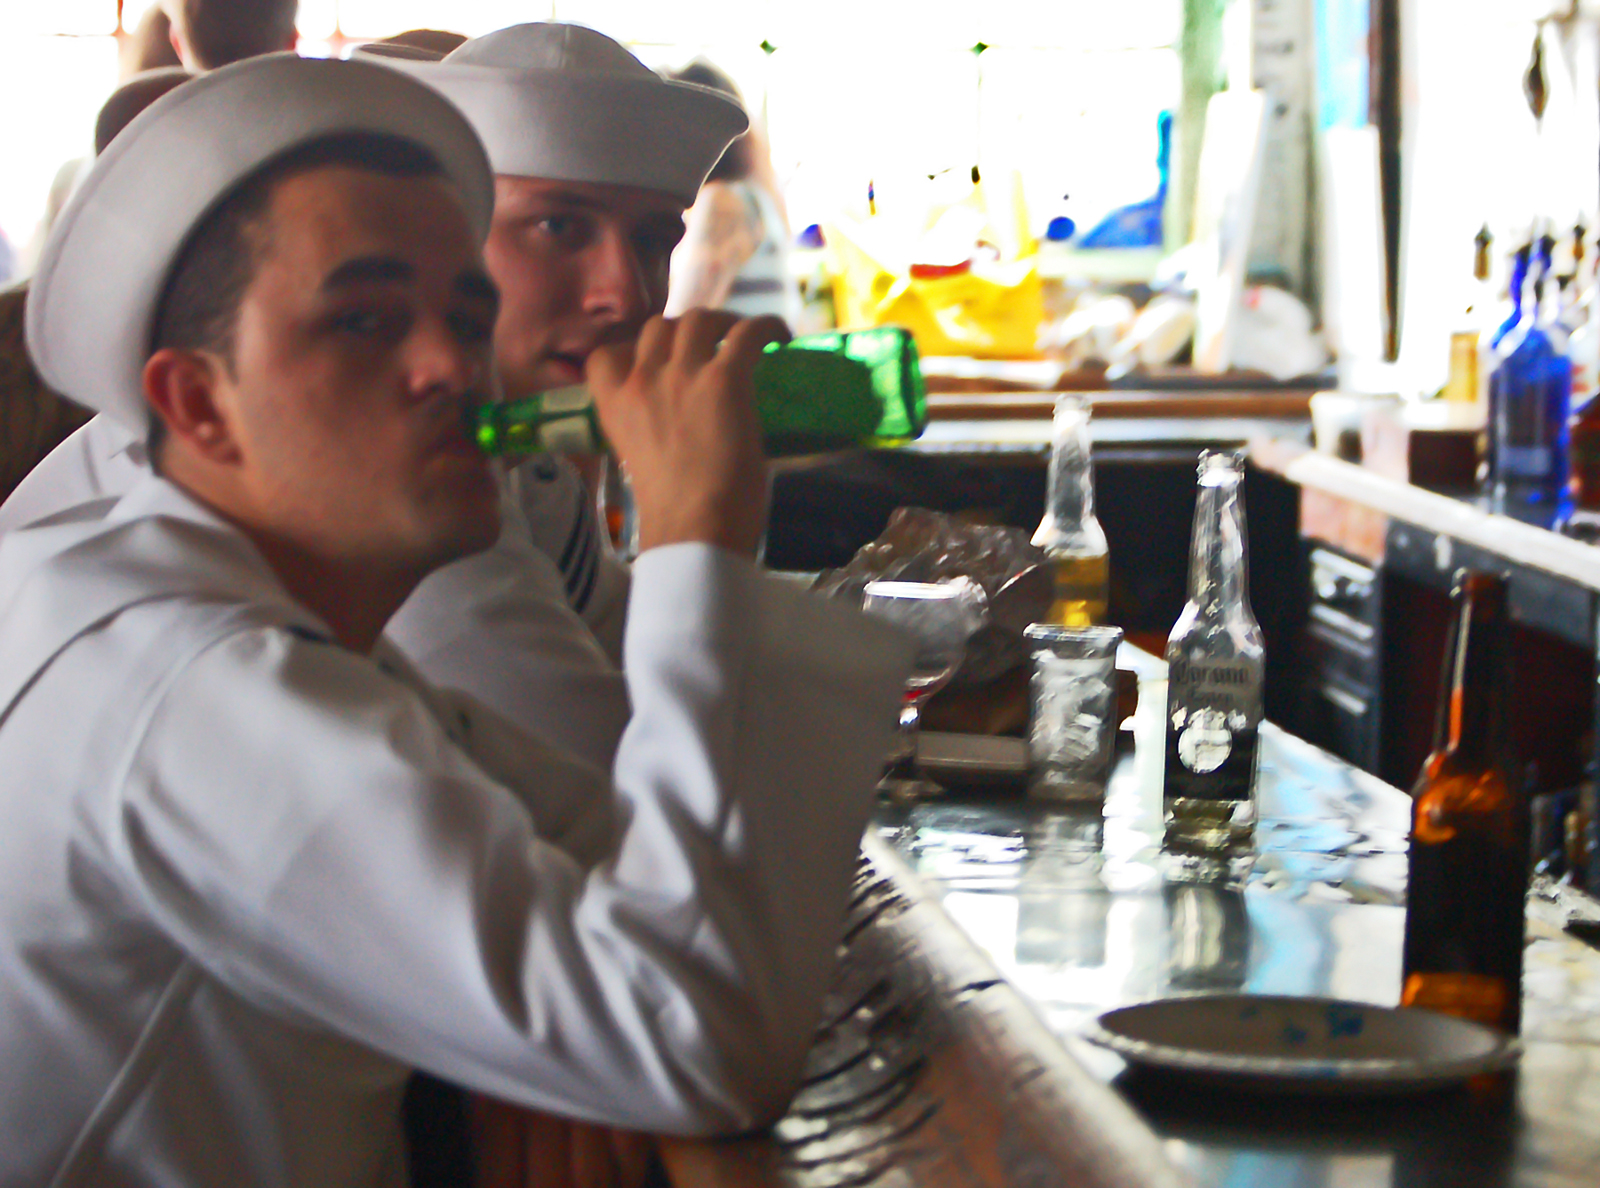 Drink up, sailor!